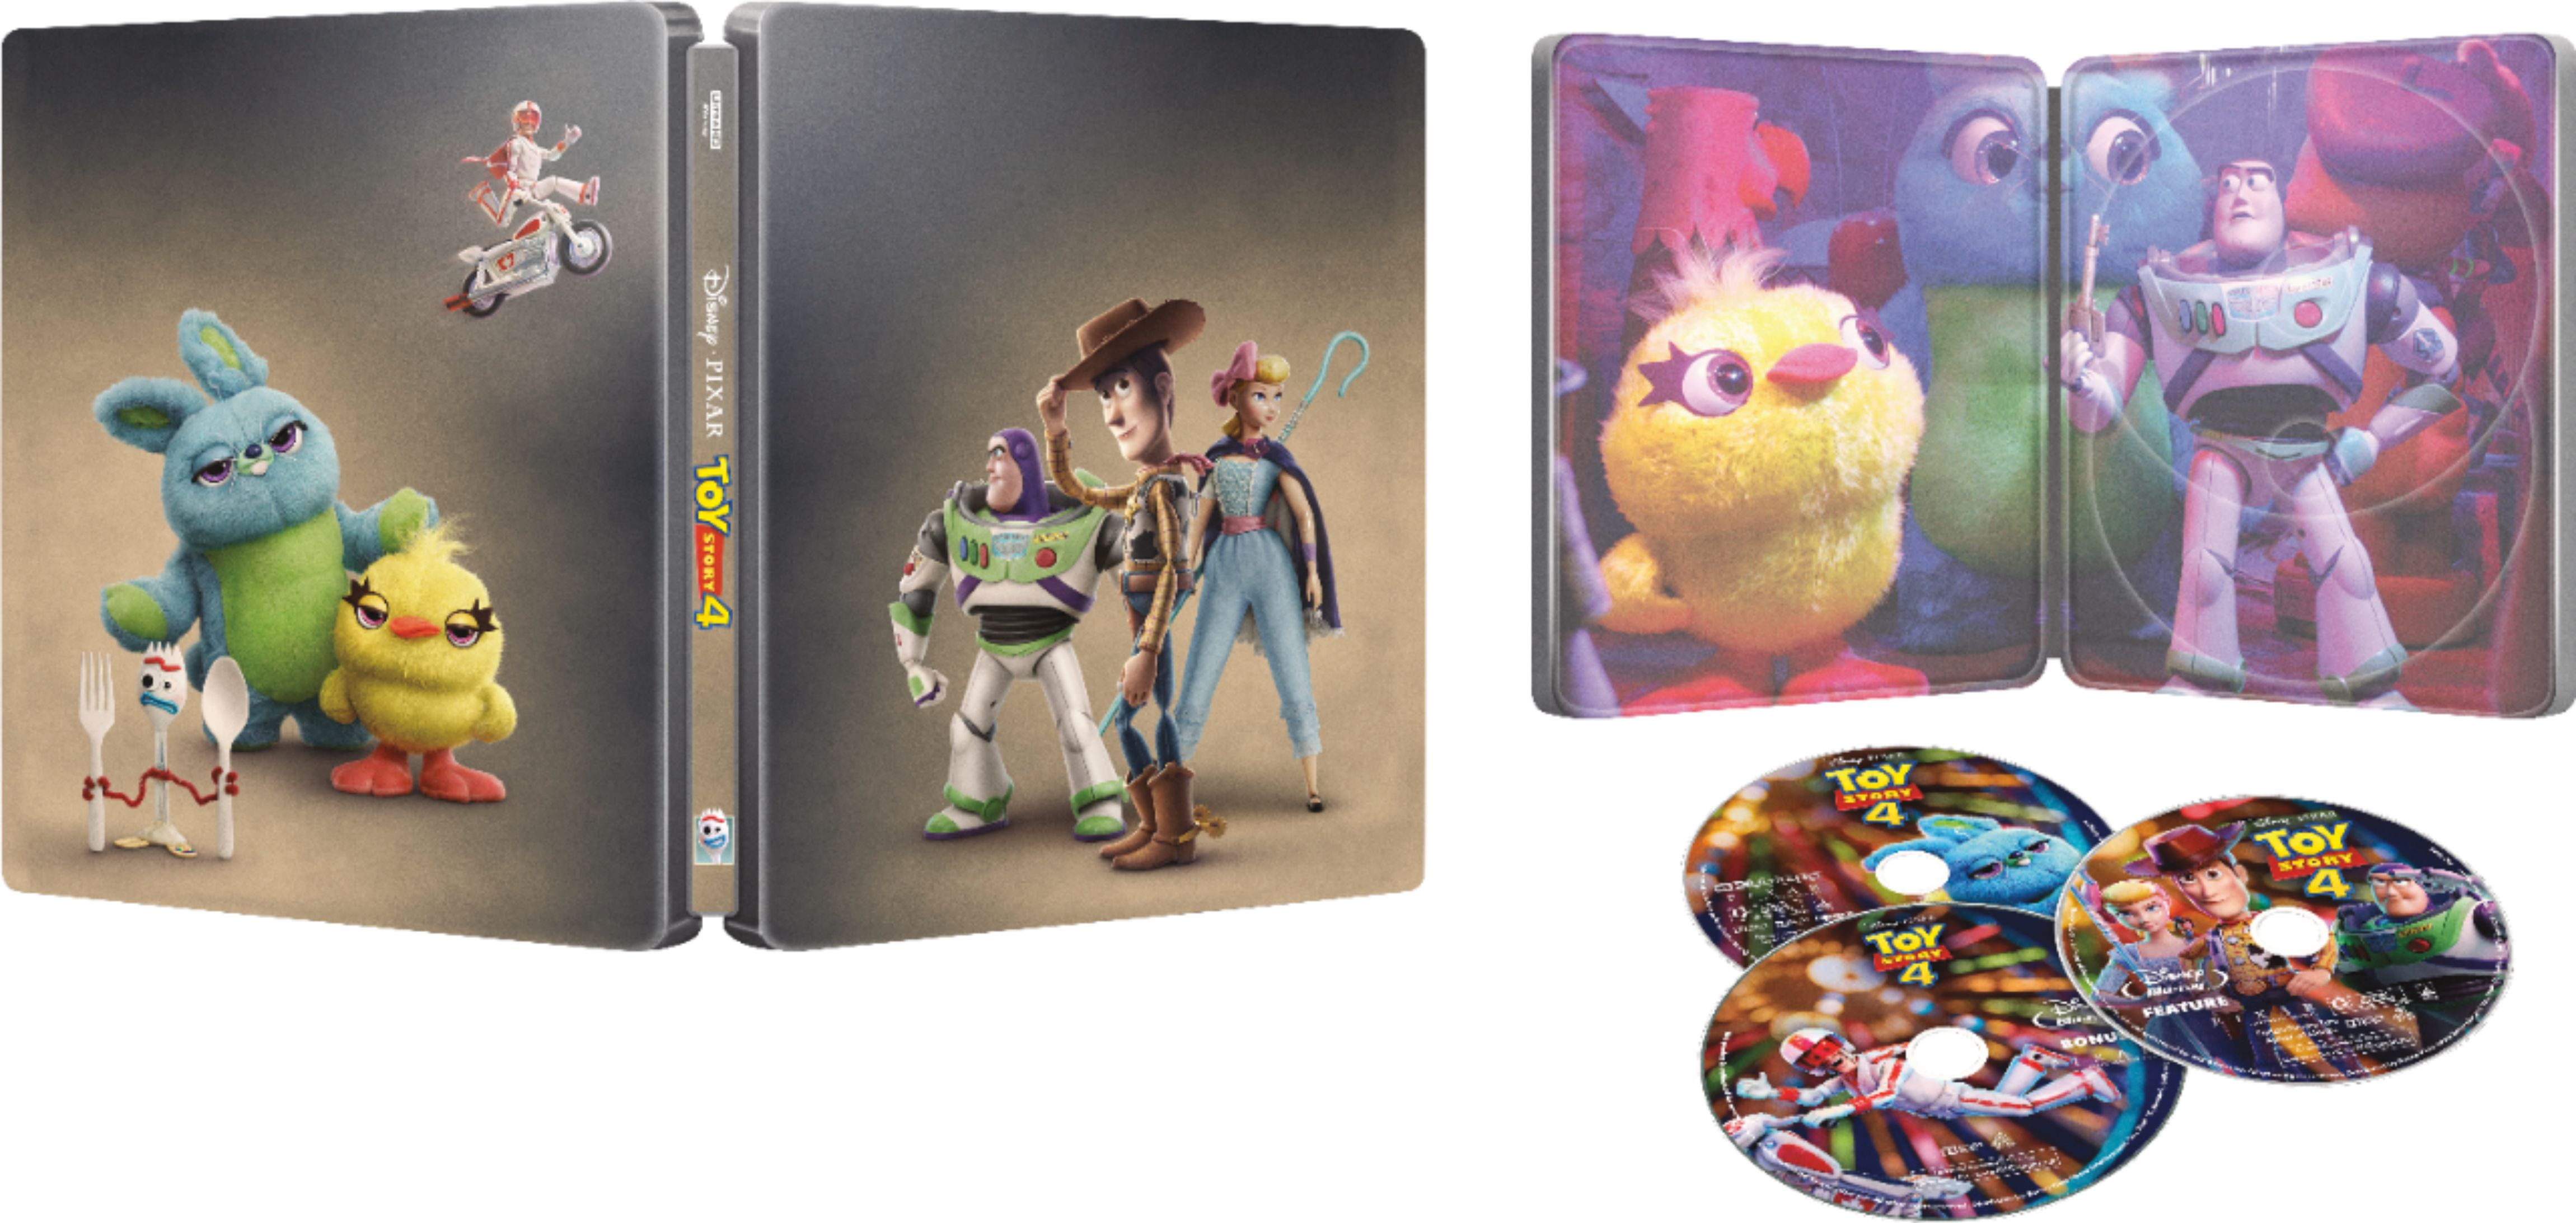 Toy Story 4 Collectible Steelbook, #ToyStory4